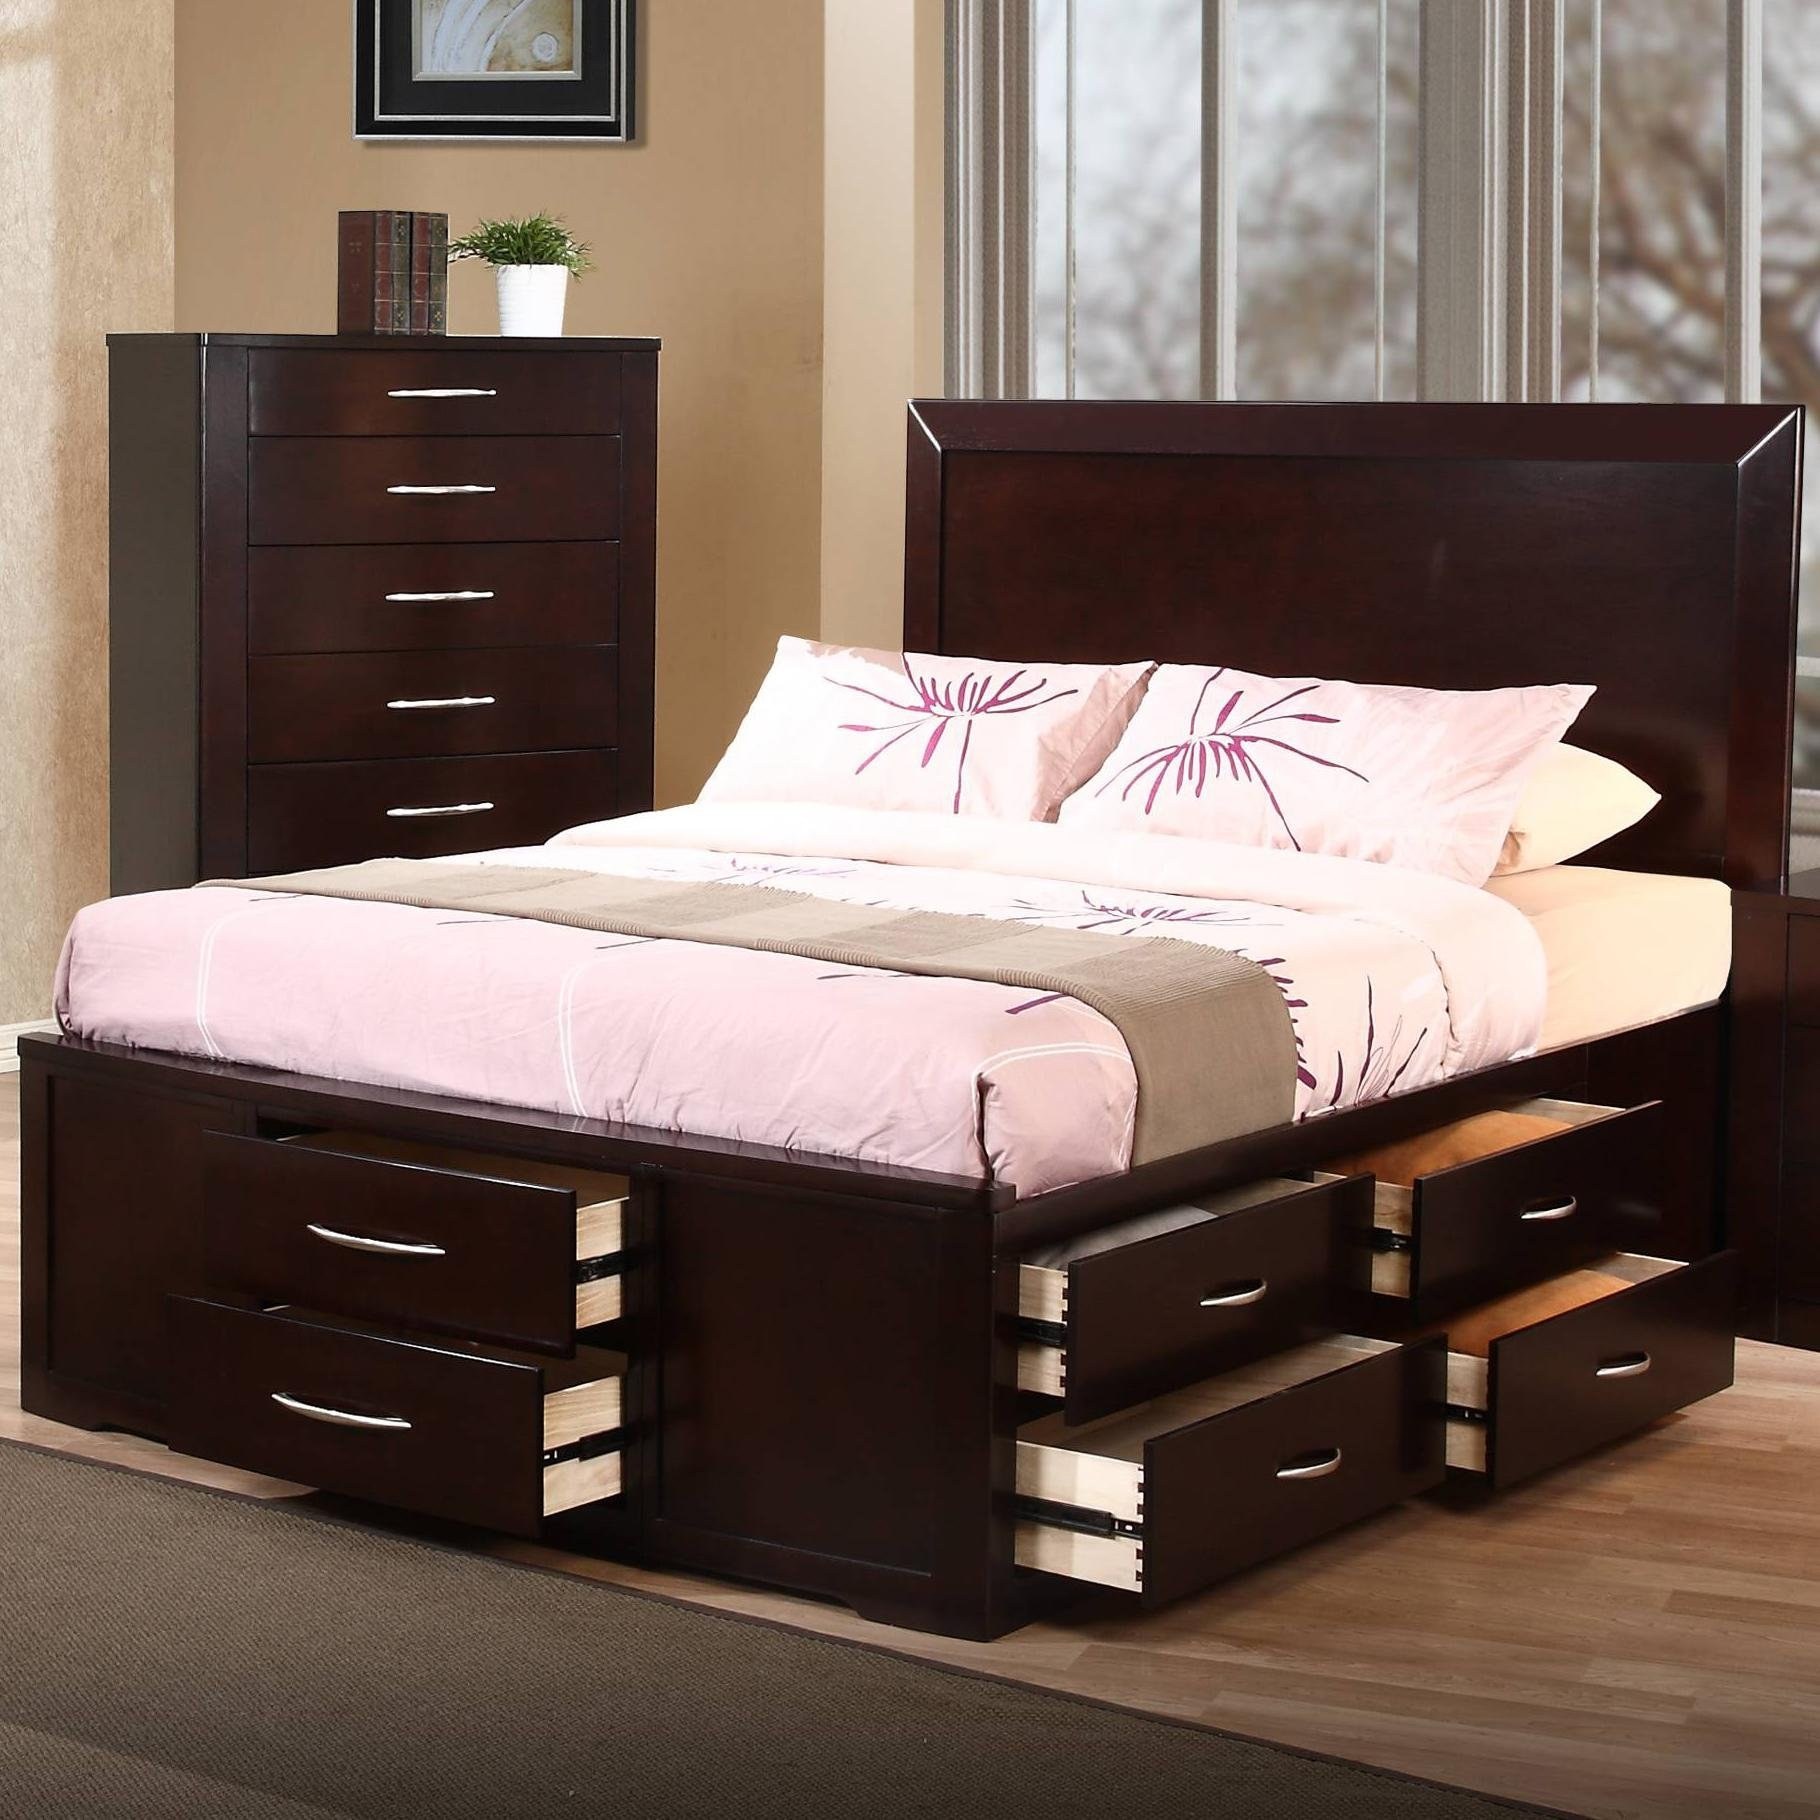 Queen Size Bed Frame And Headboard Set